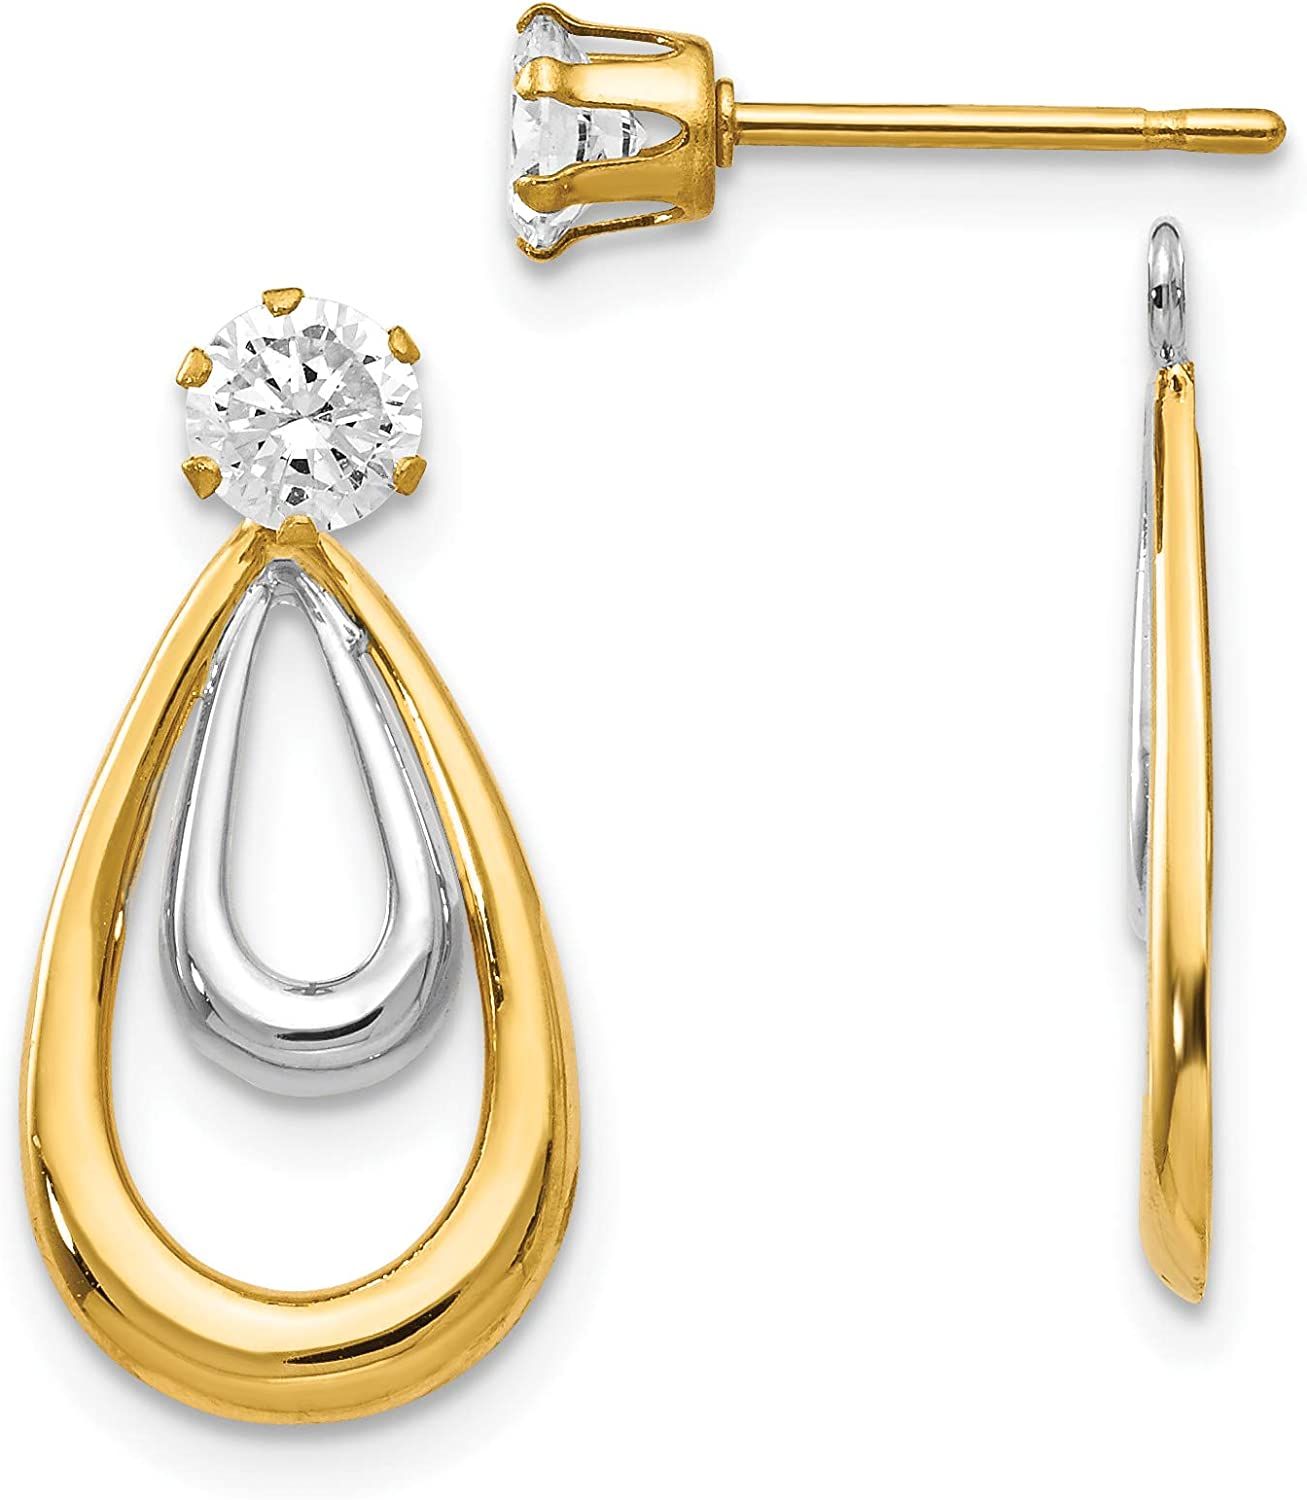 Polished Double Tear Drop Earring Jackets with CZ Stud in Real 14k Gold